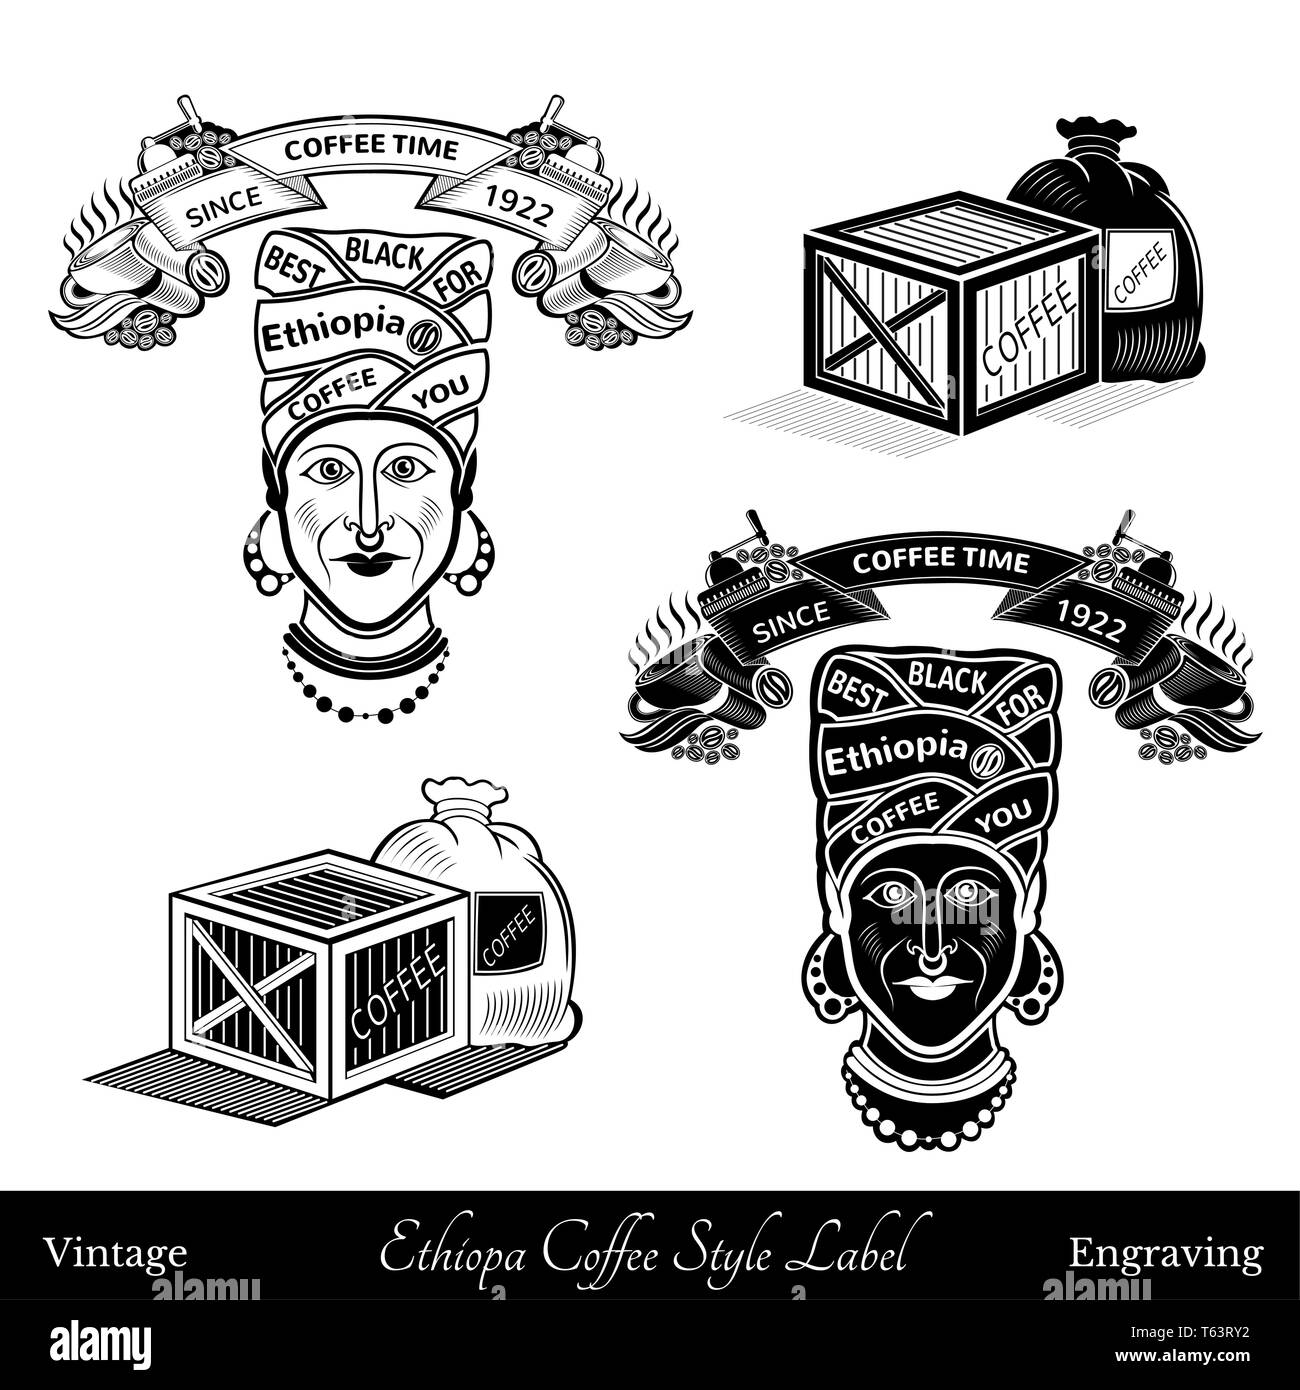 cup and coffee mill under the ribbon template for text. black woman with turban best ethiopia coffee lettering. Coffee style silhouette black and whit - Stock Image